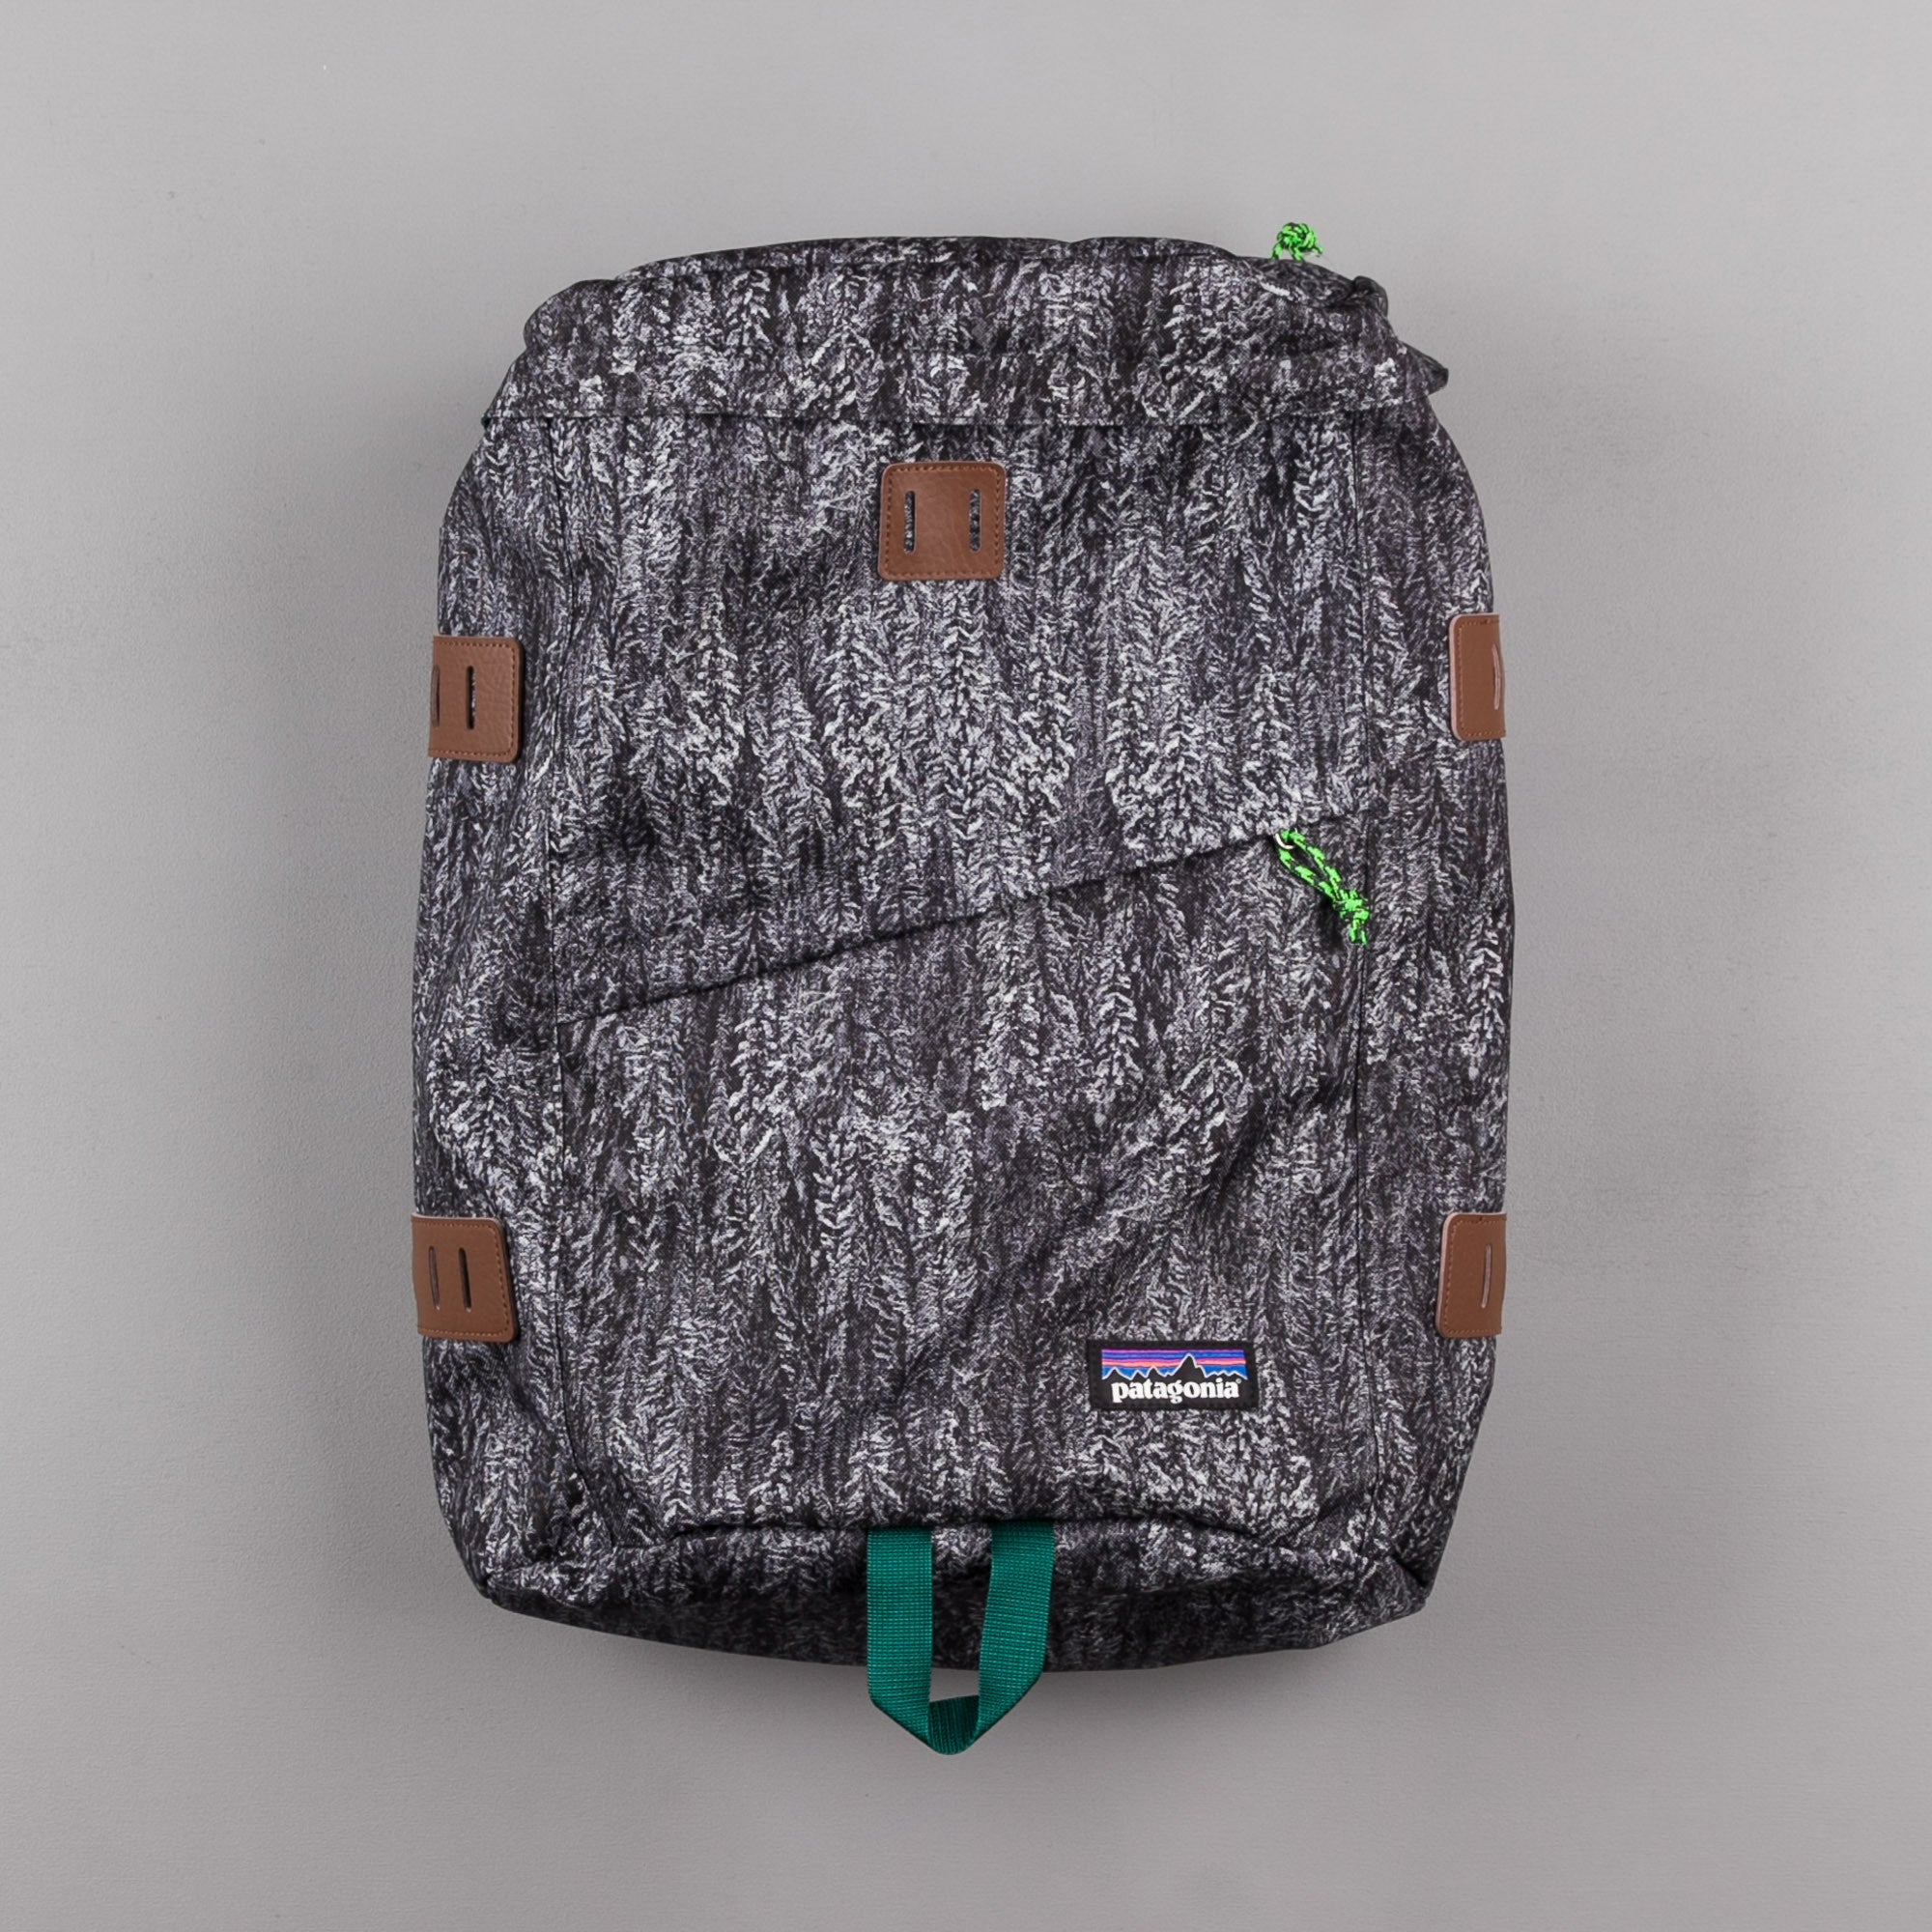 Patagonia Toromiro Backpack - Forestland: Black